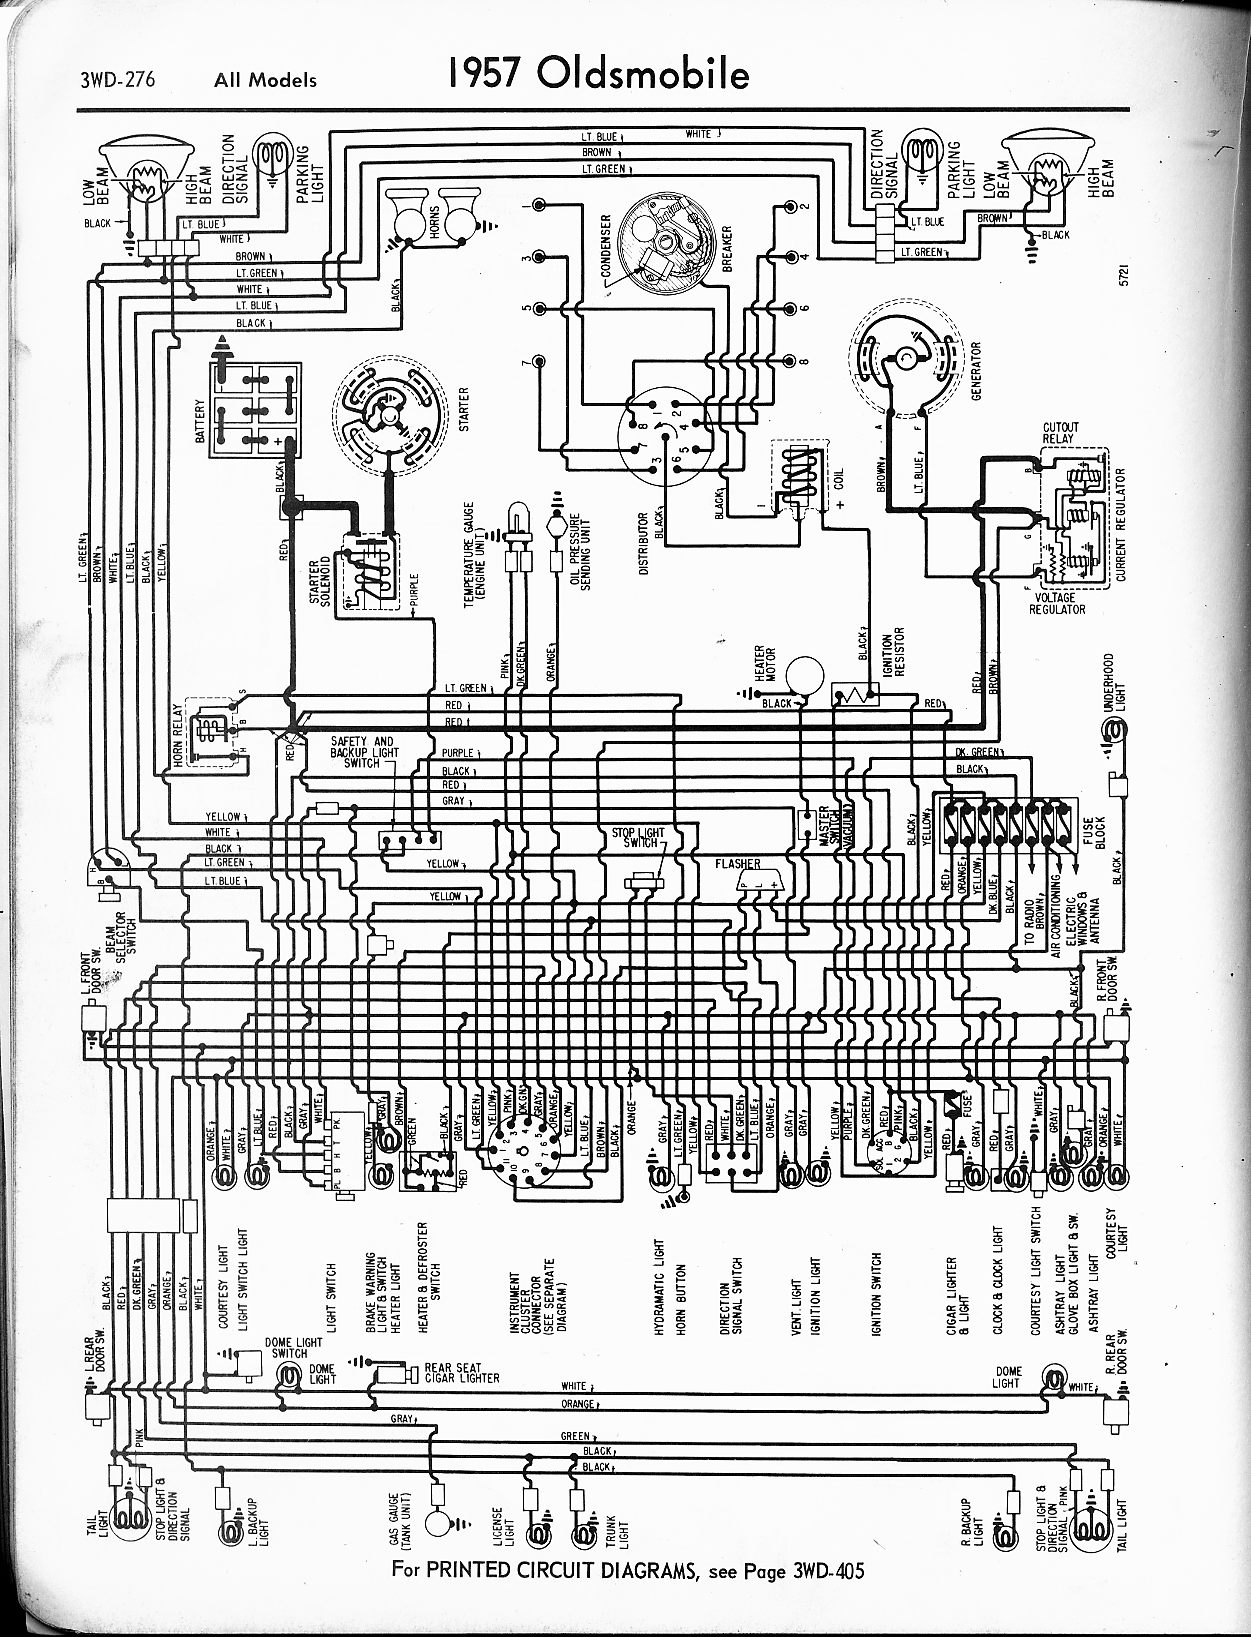 Cool 1984 Cutlass Wiring Diagram Wiring Diagram Tutorial Wiring Cloud Intelaidewilluminateatxorg